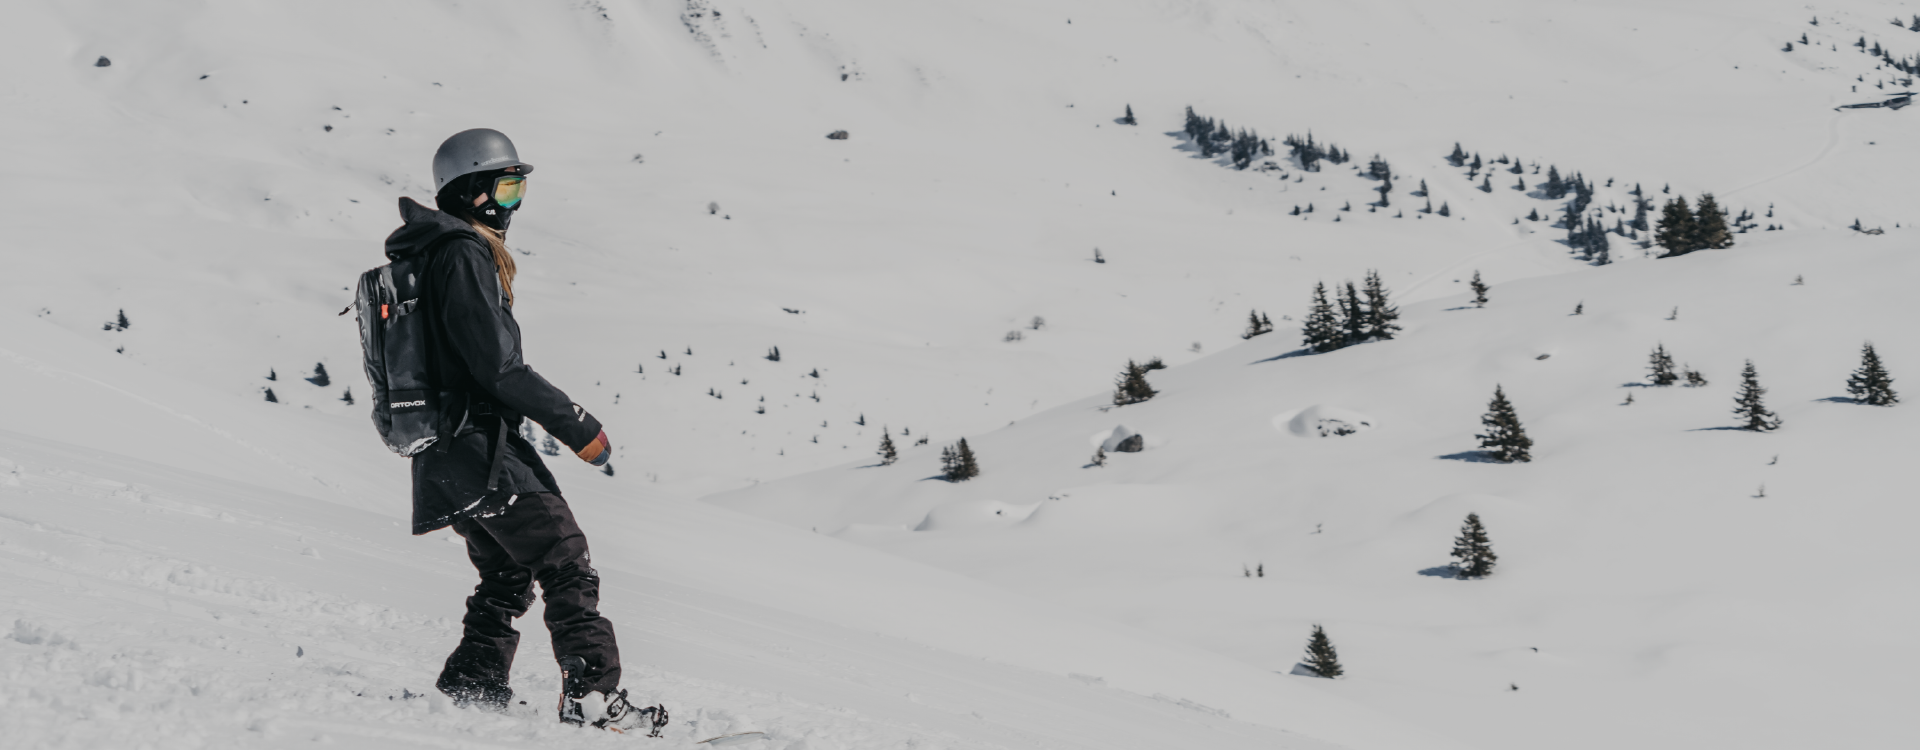 The Ride Side LAAX page video cover image